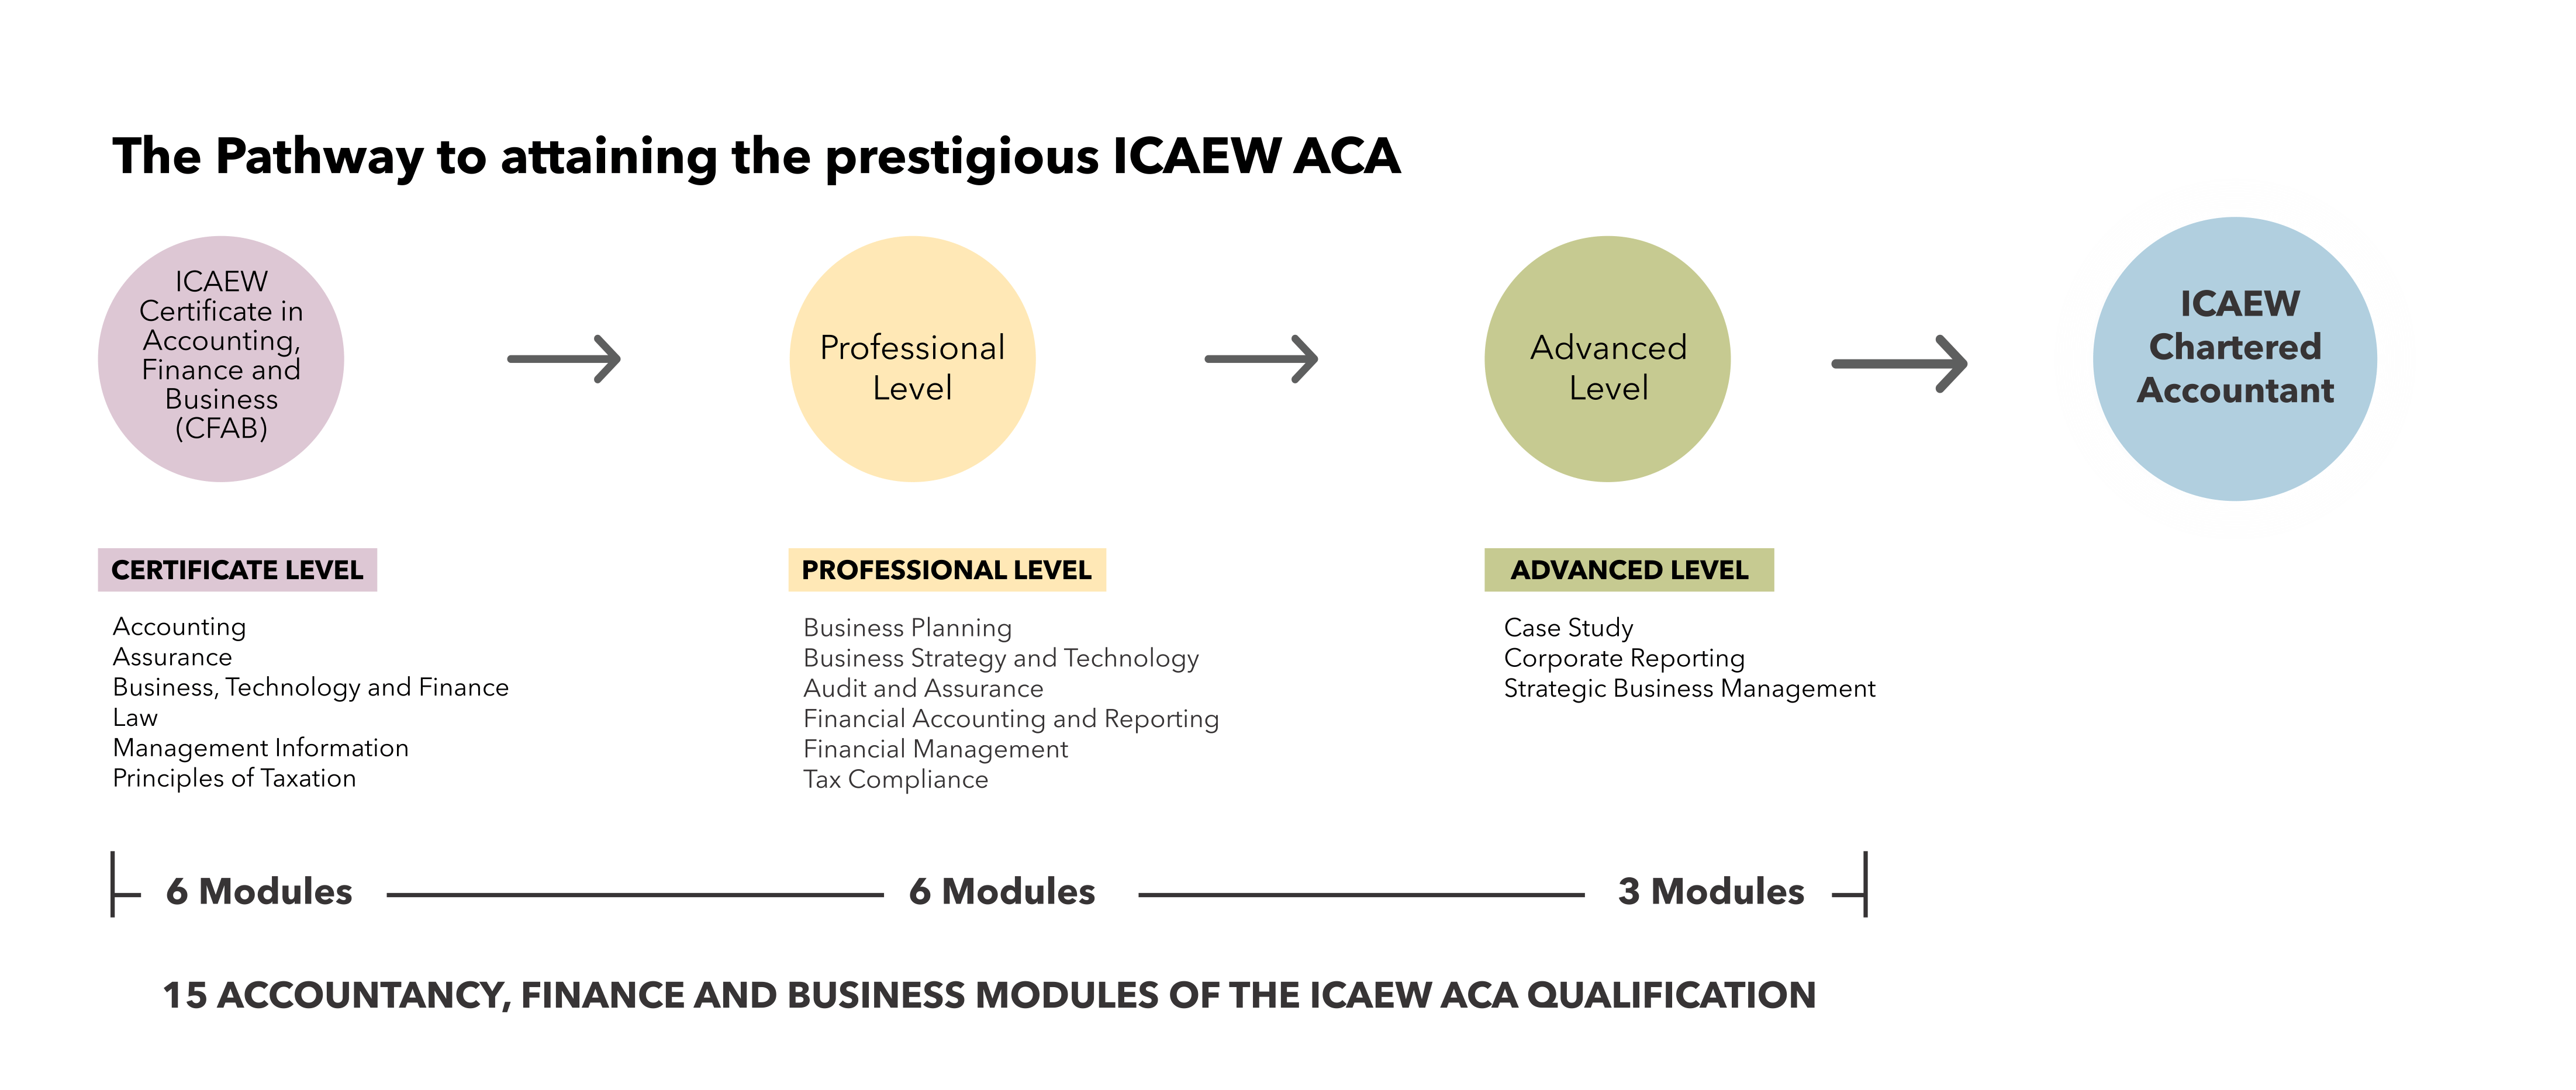 Aca training in singapore find your route icaew careers icaew certificate in finance accounting and business progression to the aca qualification 1betcityfo Image collections